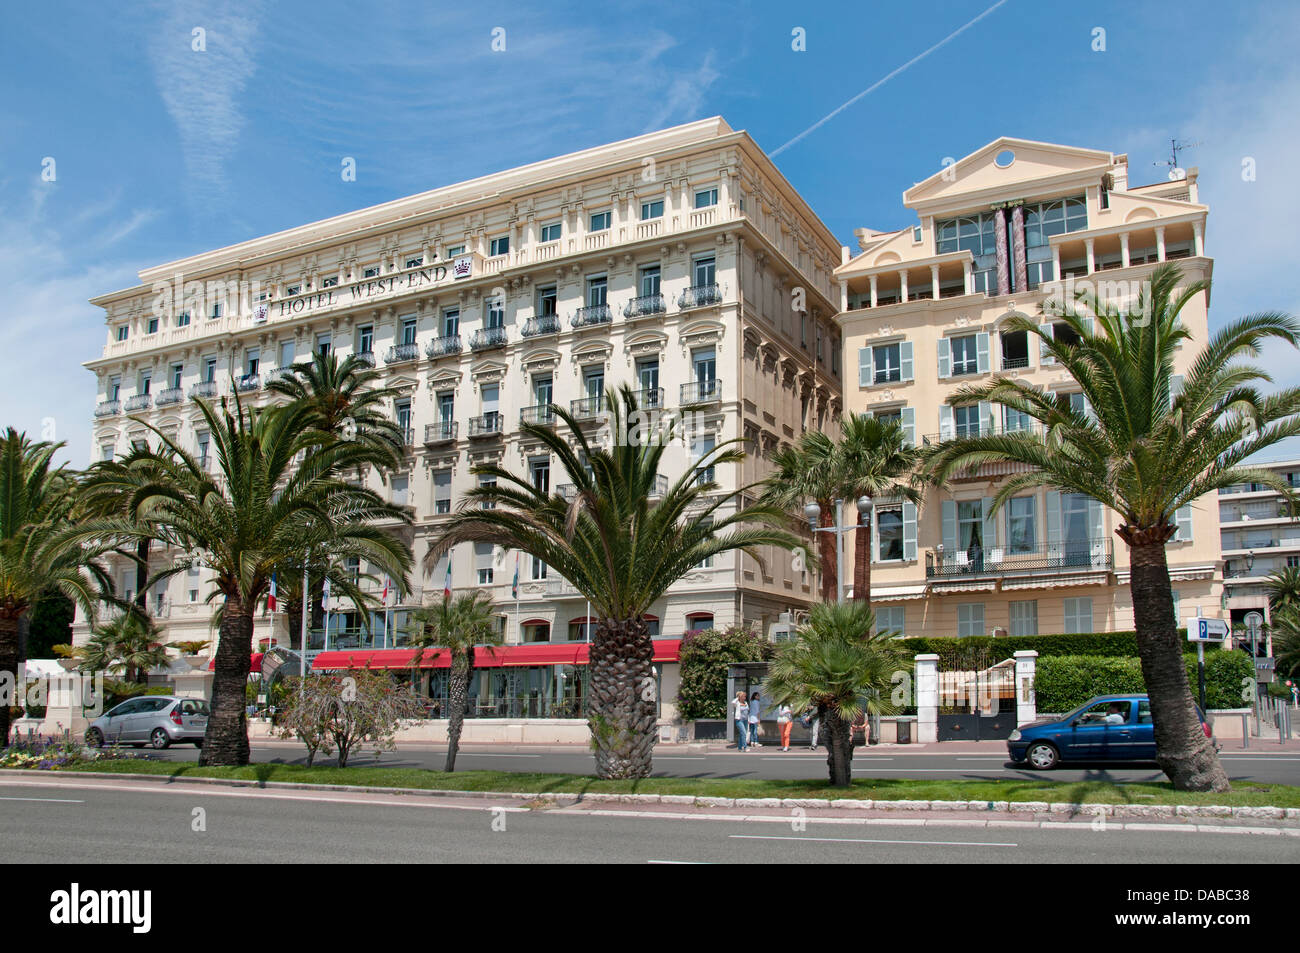 Hotel West End Nice Beach Promenade des Anglais French Riviera Cote D'Azur France - Stock Image